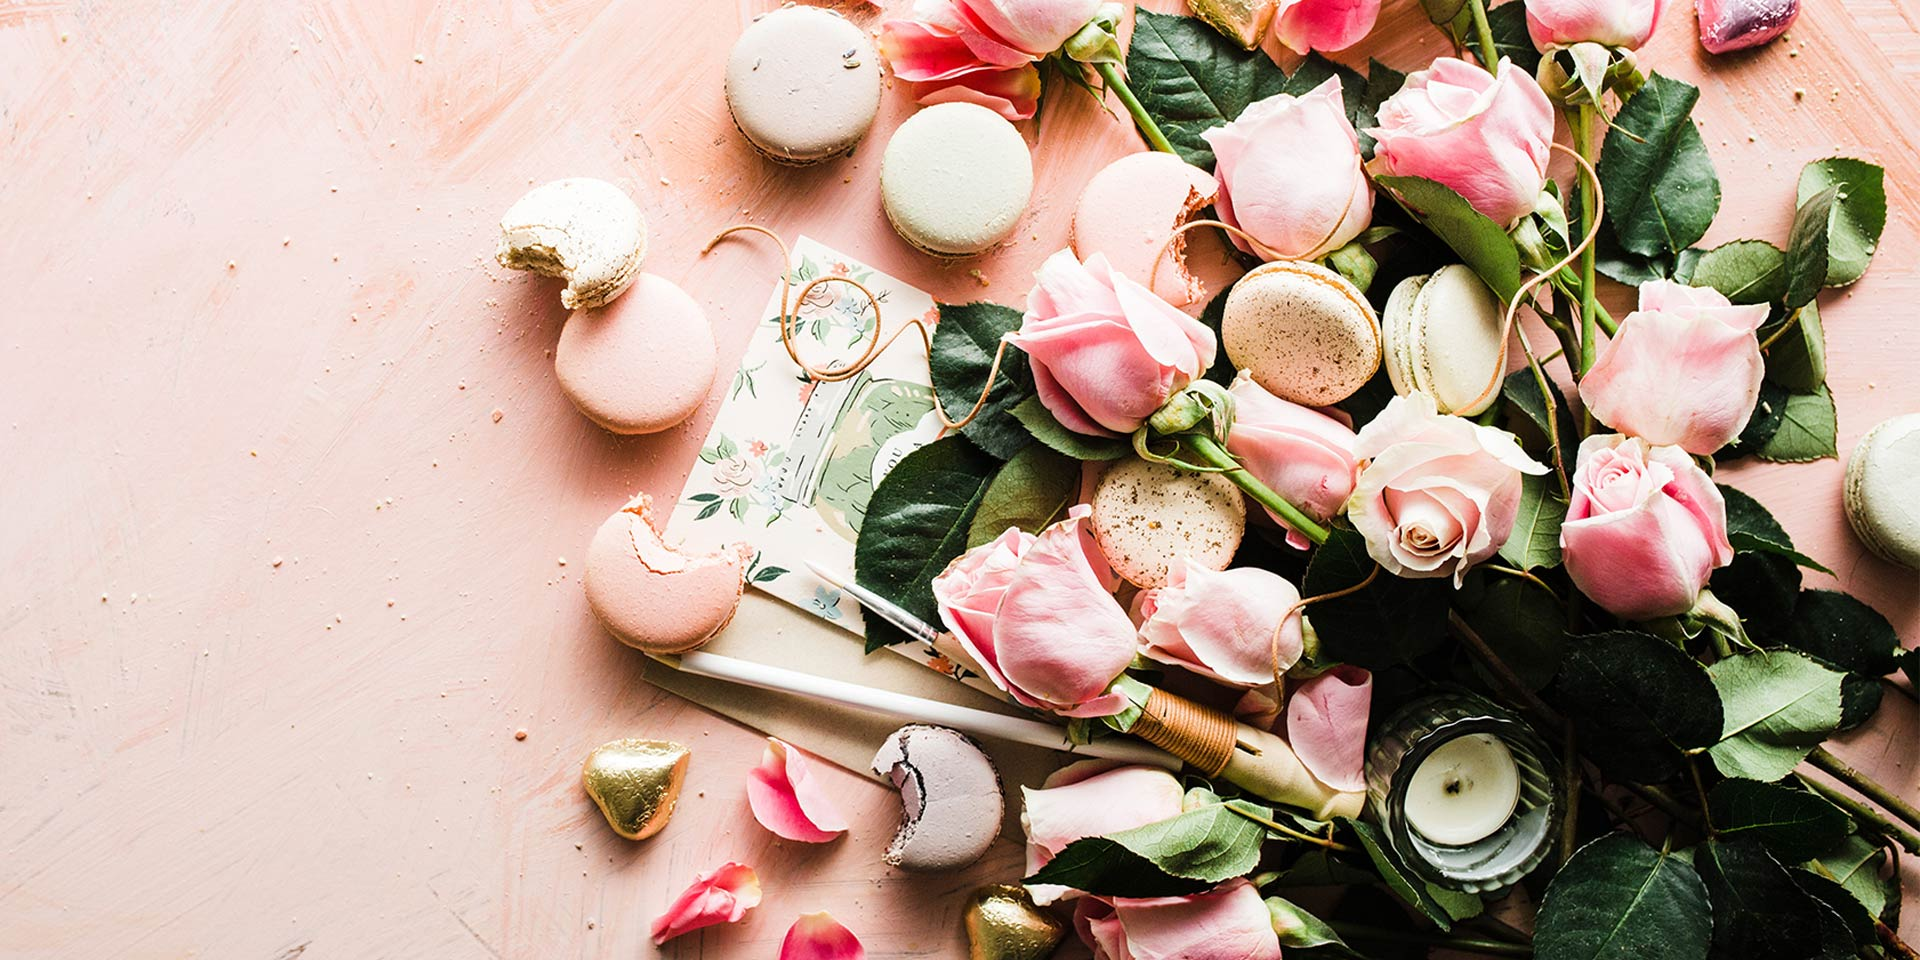 A beautiful array of pink roses with pink and white macarons scatter on a dusty baby pink background.